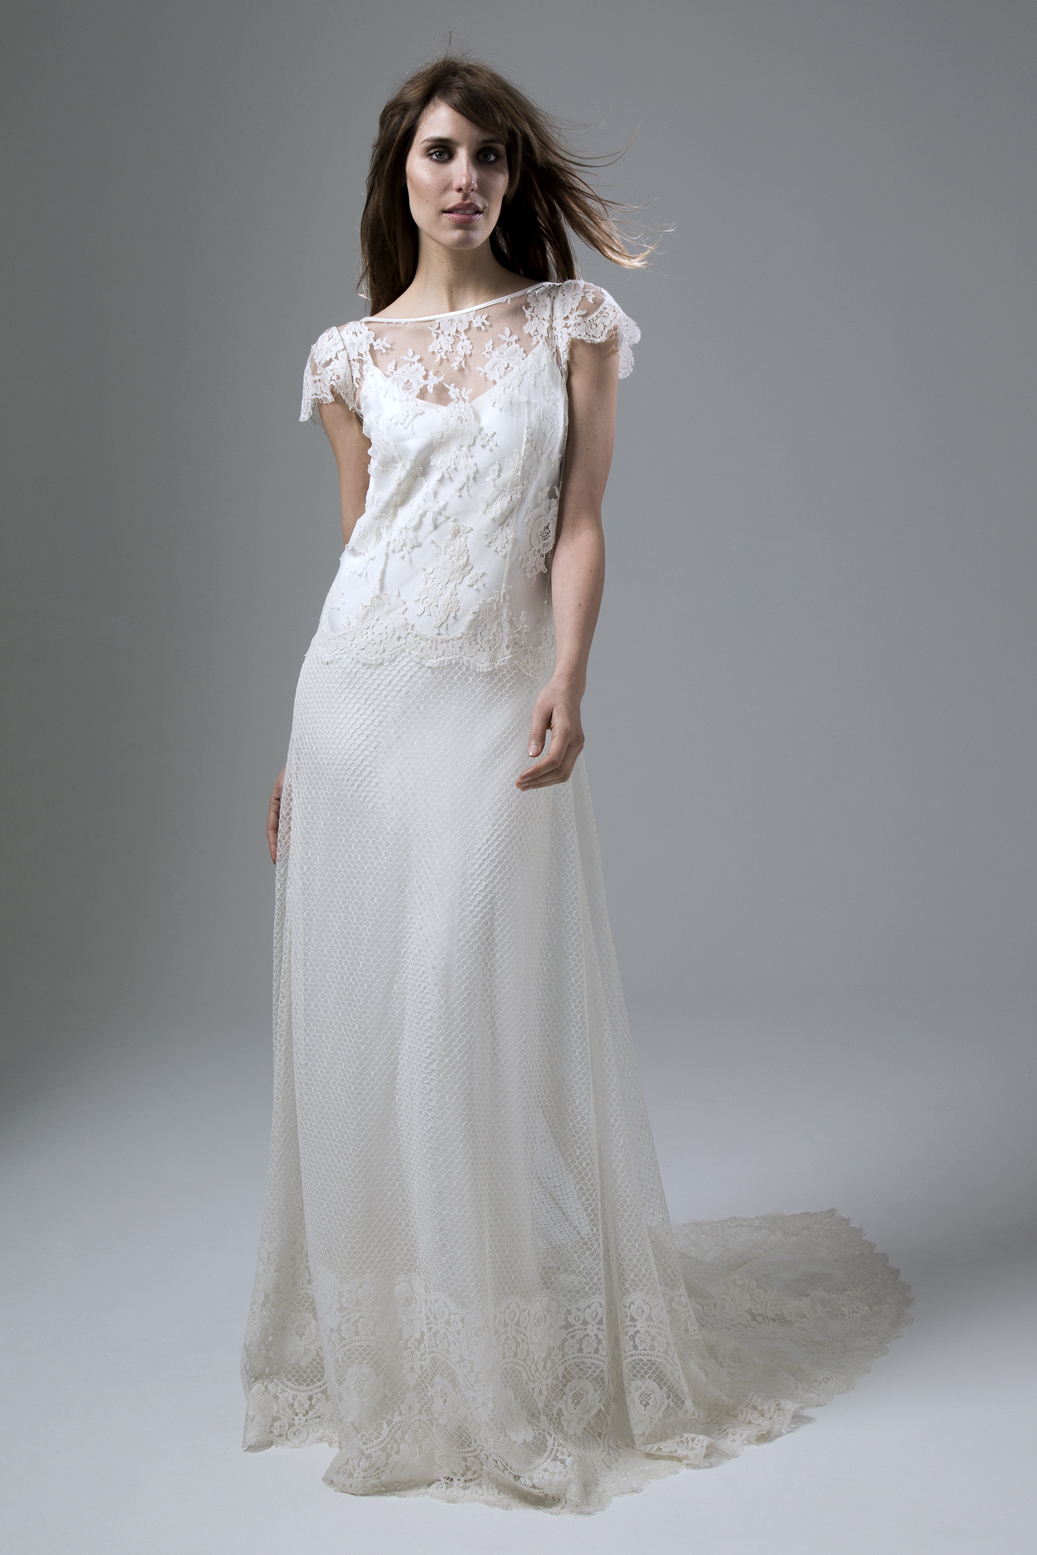 Iris Honey Full French Lace Wedding Dress by Halfpenny London